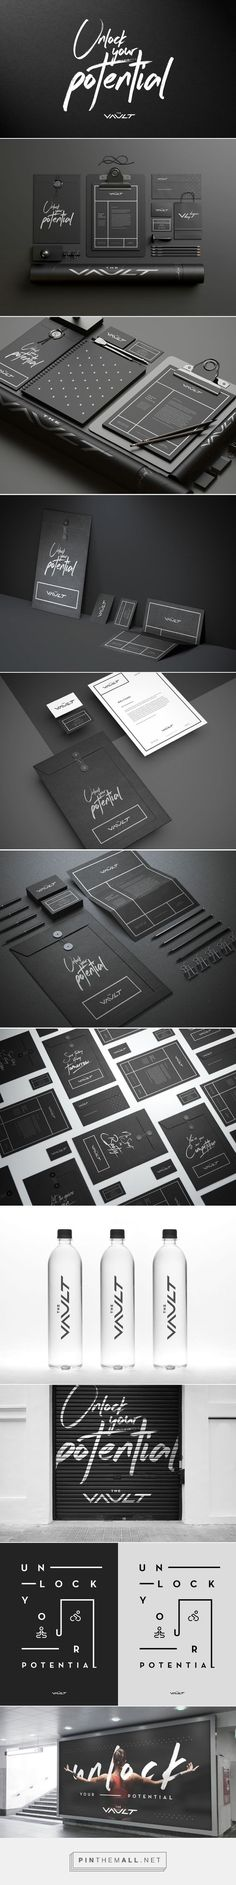 The Vault Branding on Behance | Fivestar Branding – Design and Branding Agency & Inspiration Gallery